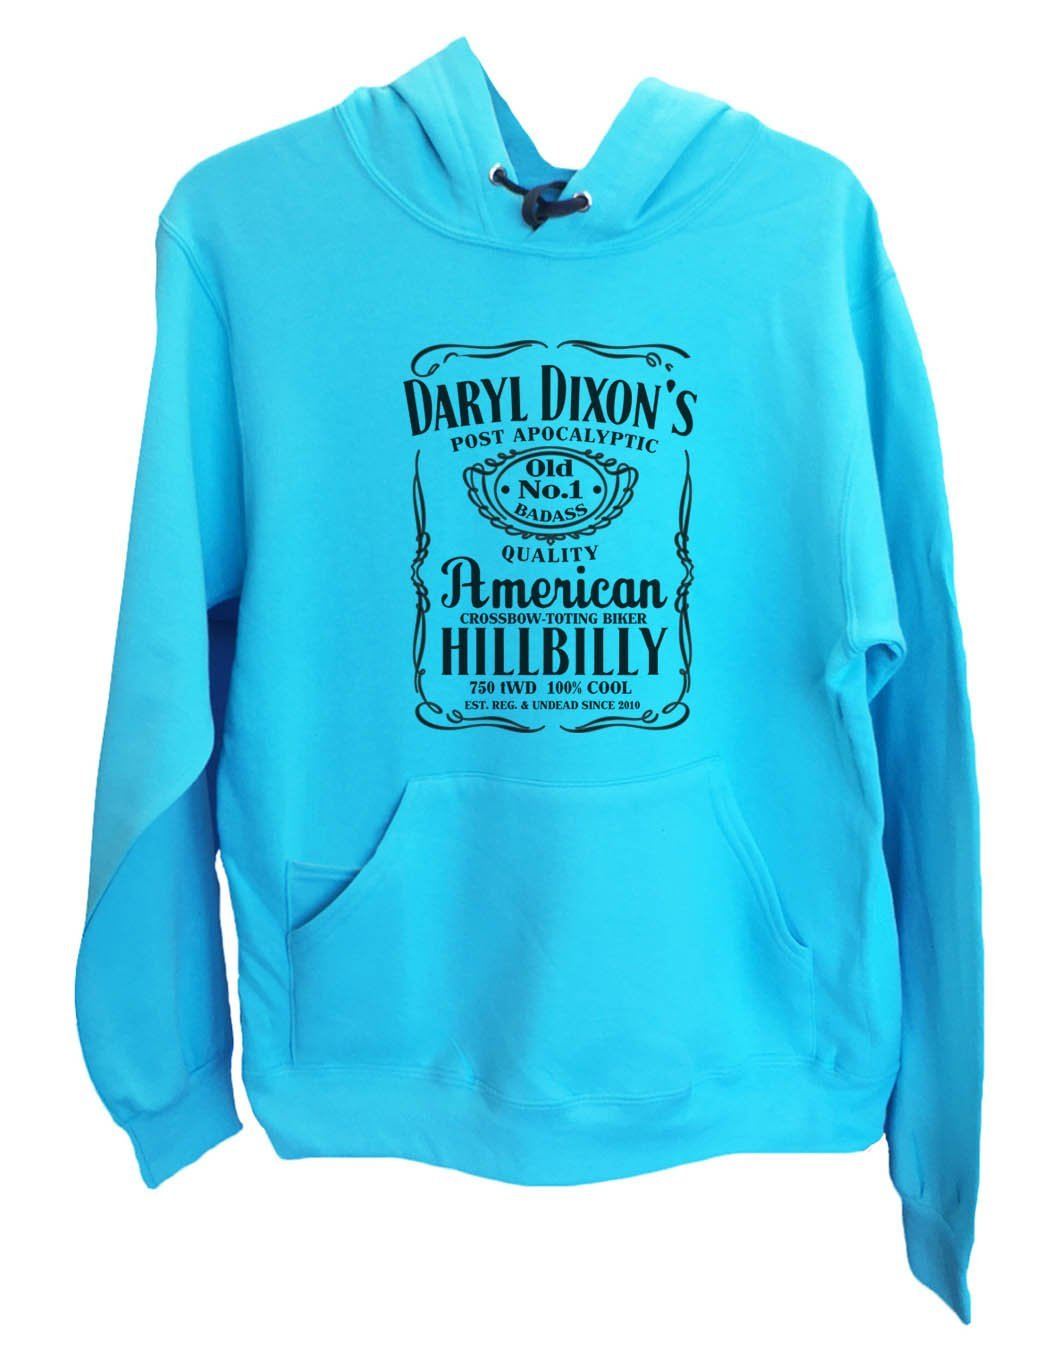 UNISEX HOODIE - Daryl Dixon's American Hillbilly - FUNNY MENS AND WOMENS HOODED SWEATSHIRTS - 2309 Funny Shirt Small / Turquoise